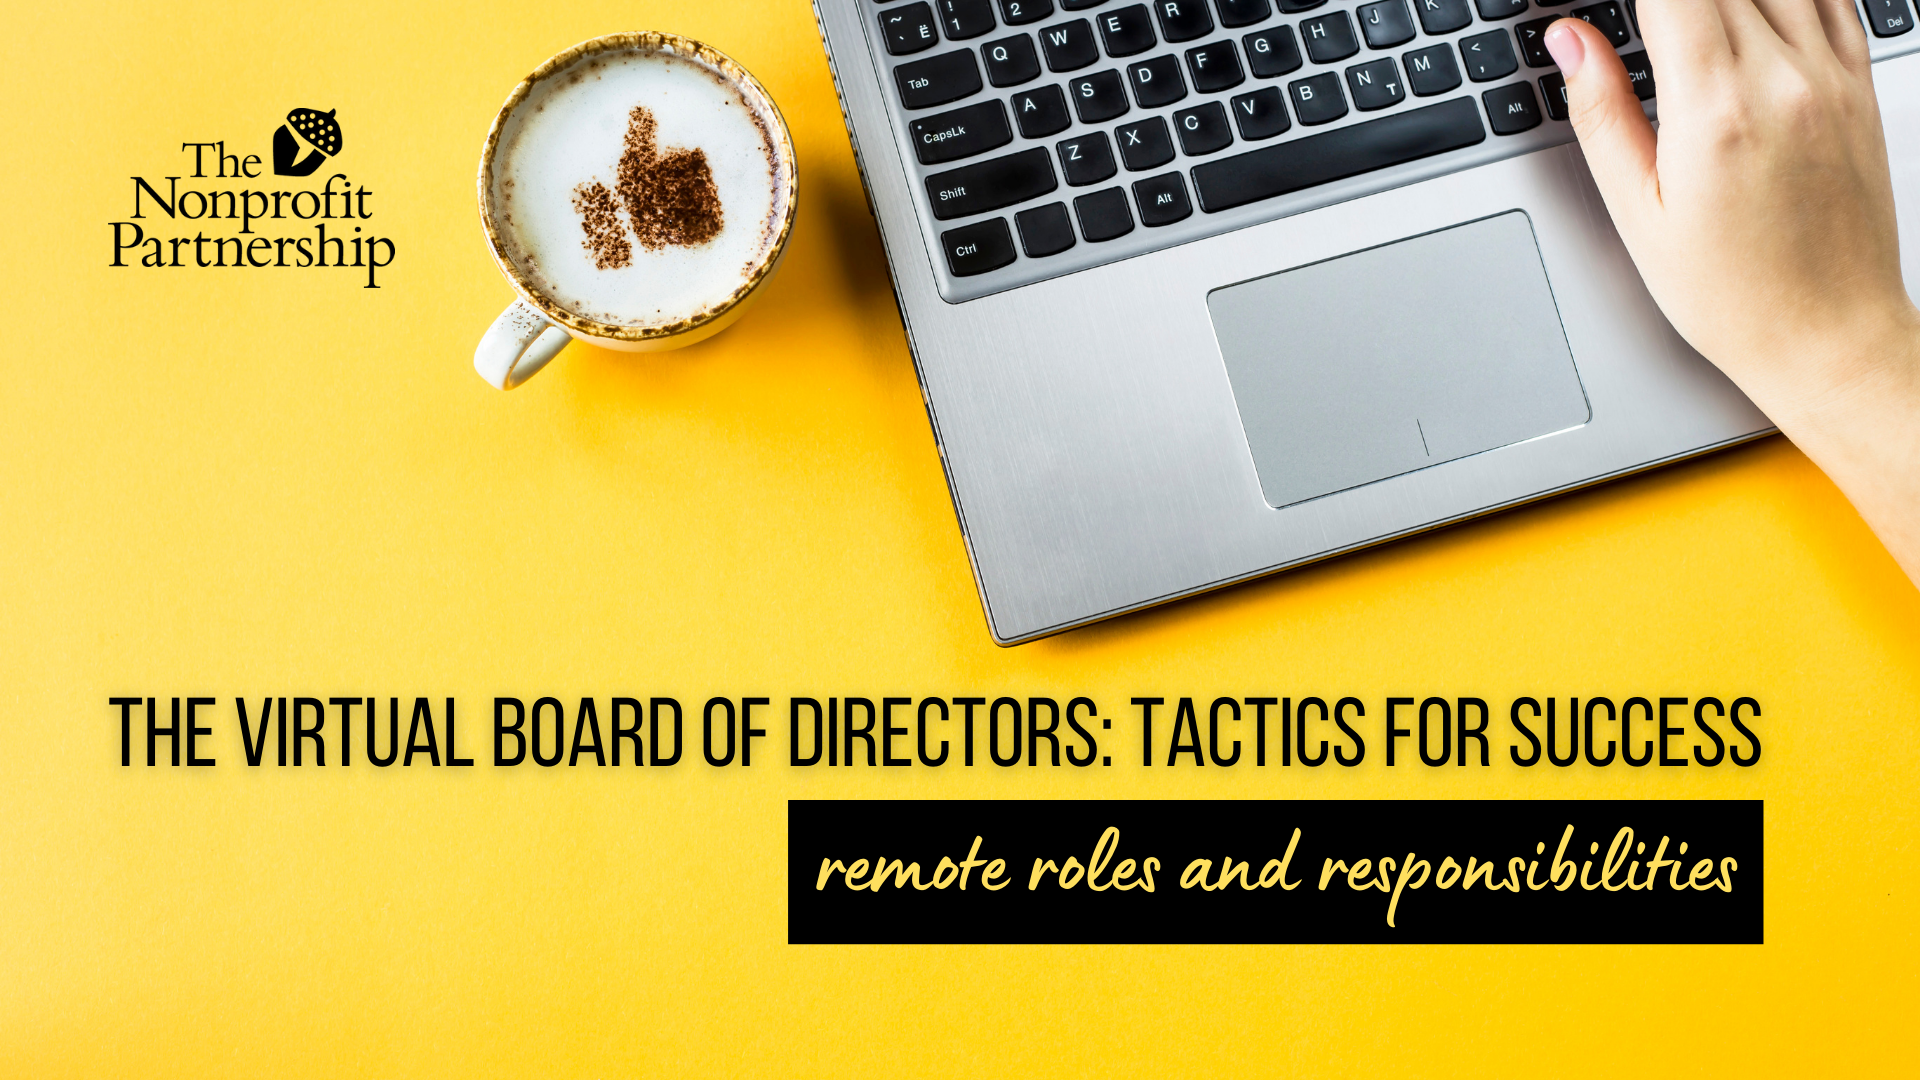 [Zoom Meeting] The Virtual Board of Directors: Tactics for Success - Board Meetings 101: Remote Roles and Responsibilities